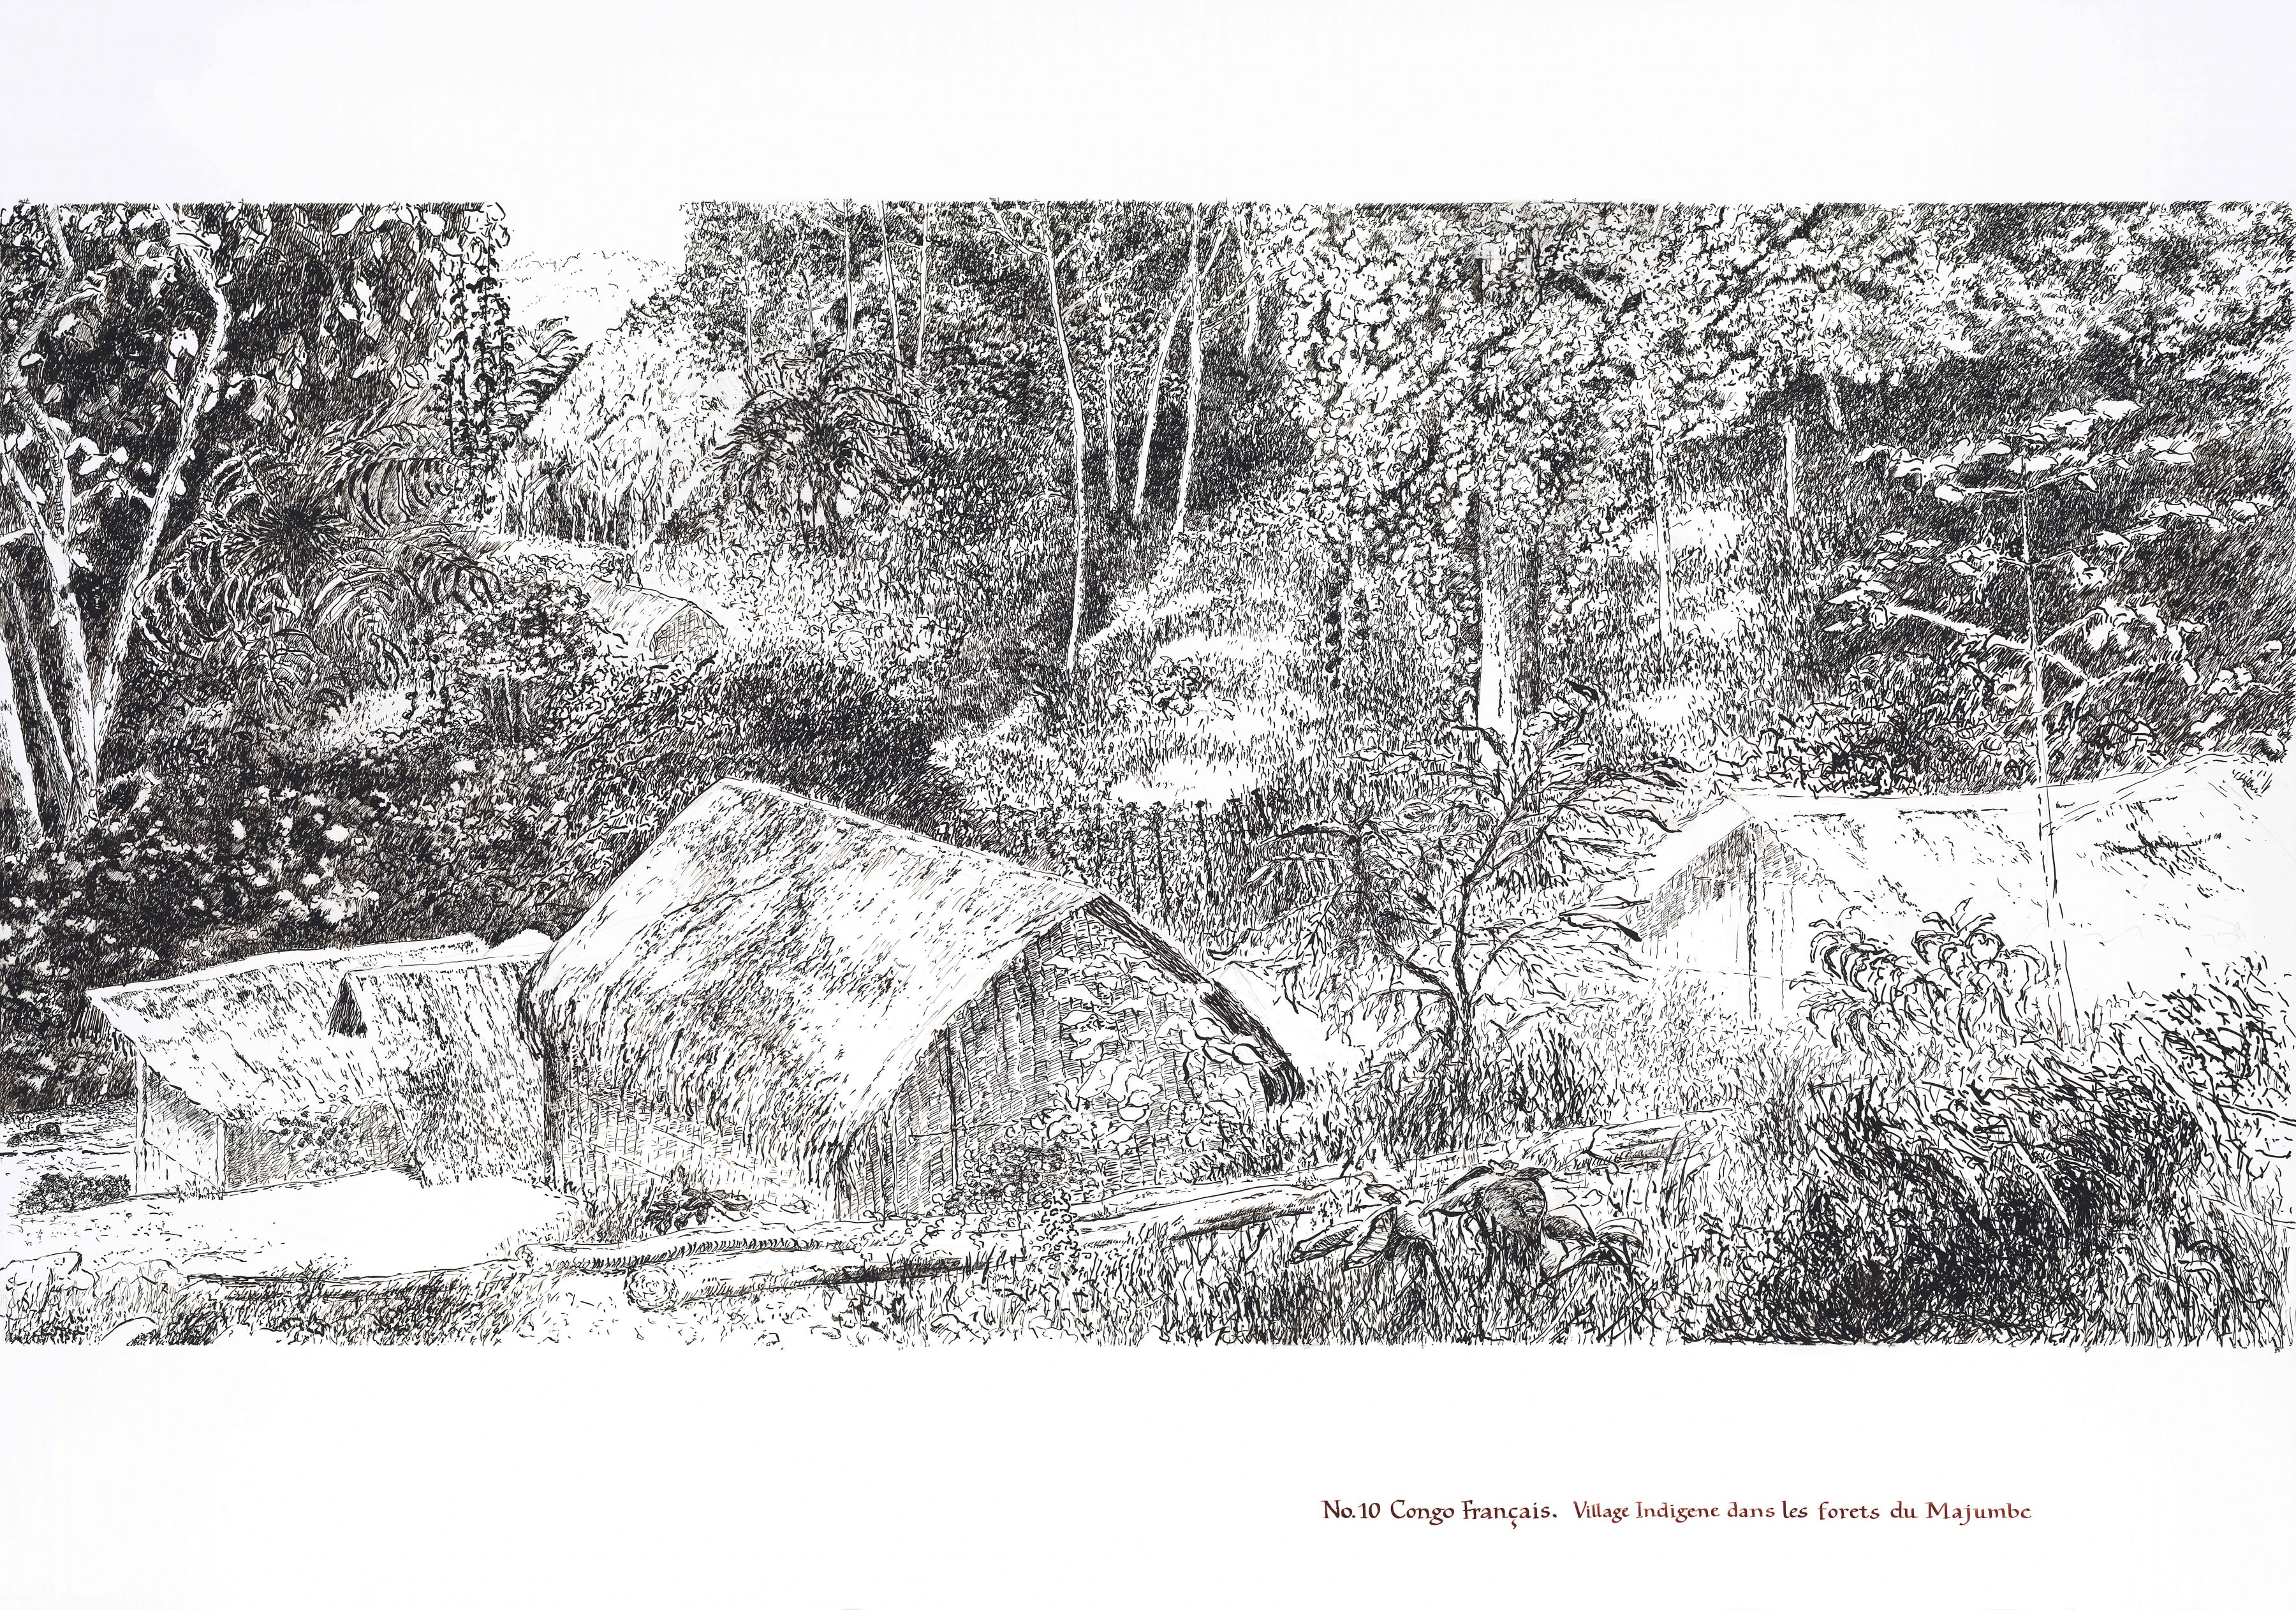 Village in the forests of Majumbe, Congo artwork